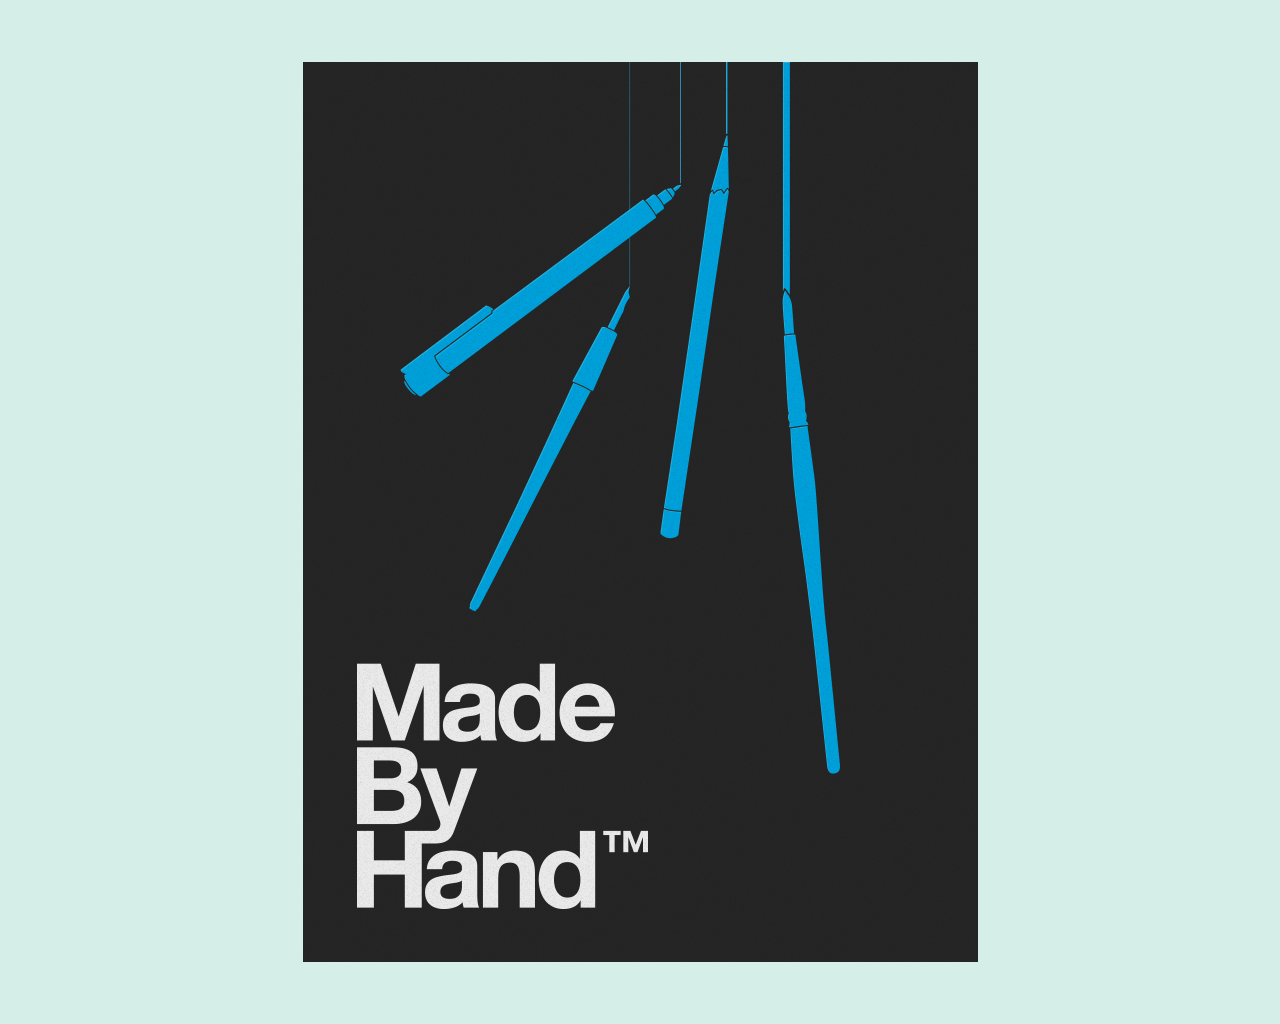 shane-bzdok-made-by-hand-tools.png